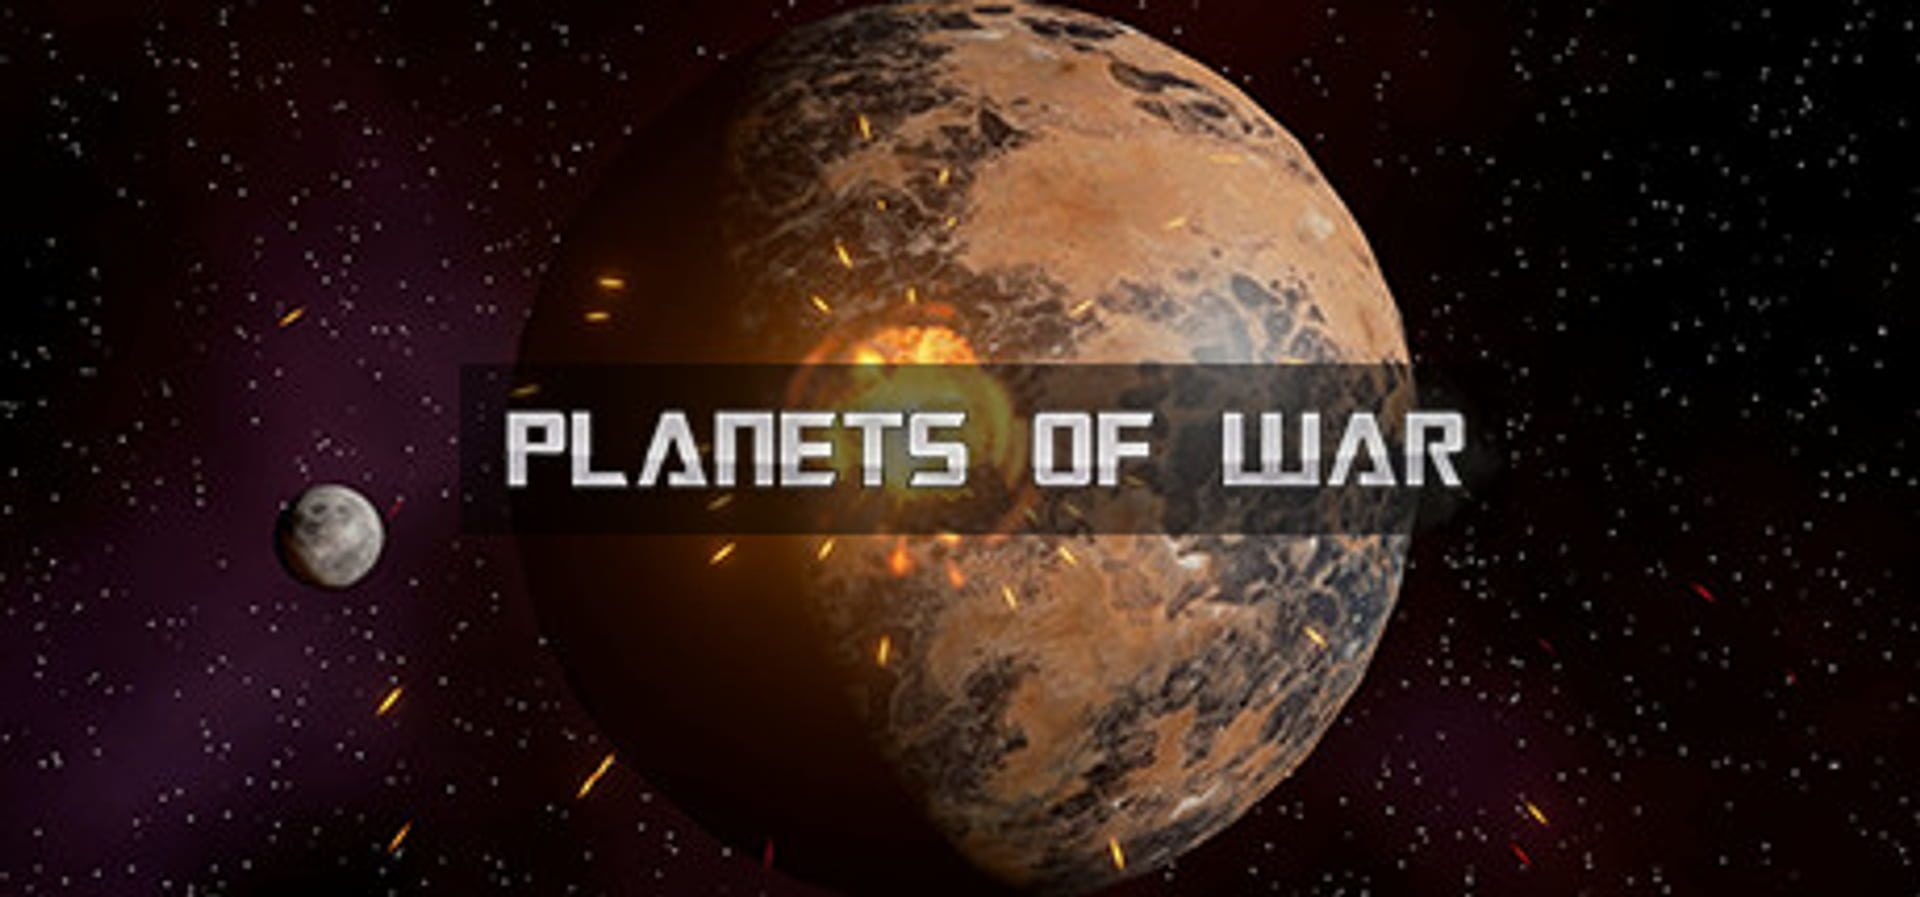 buy PLANETS OF WAR cd key for pc platform